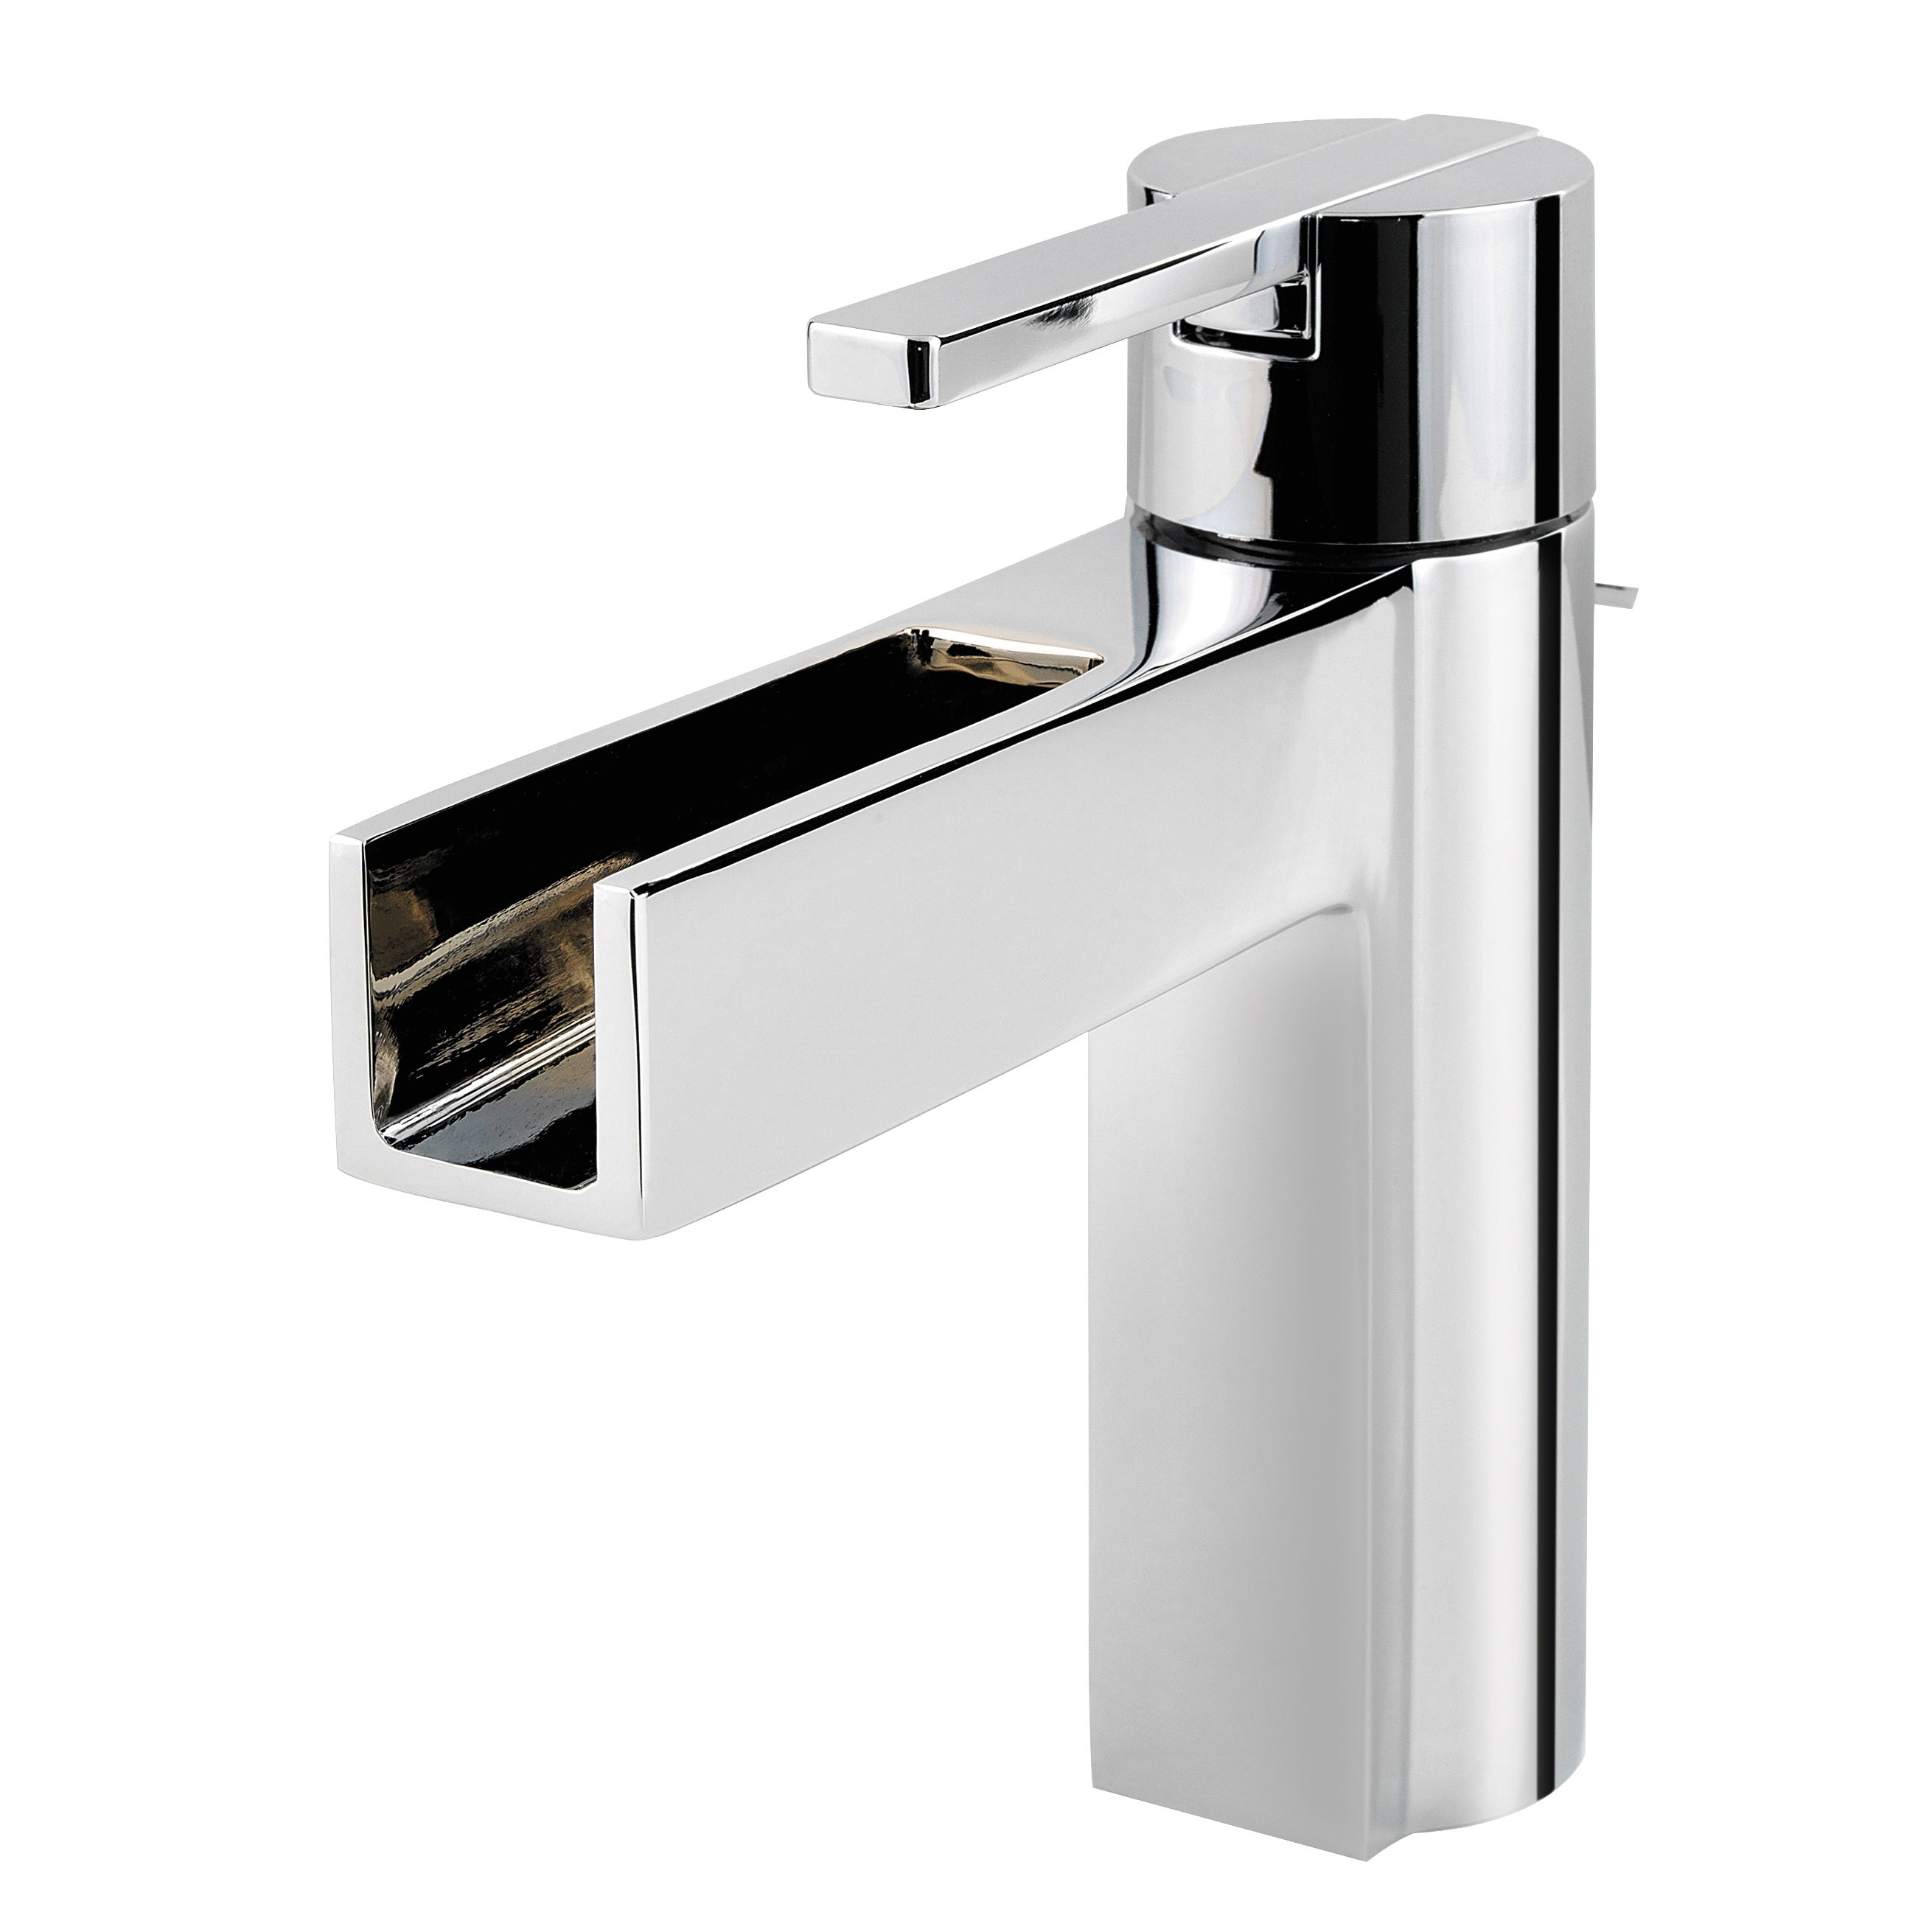 Merveilleux Pfister LF 042 VGKK Brushed Nickel Vega Bathroom Sink Faucet   Faucet.com